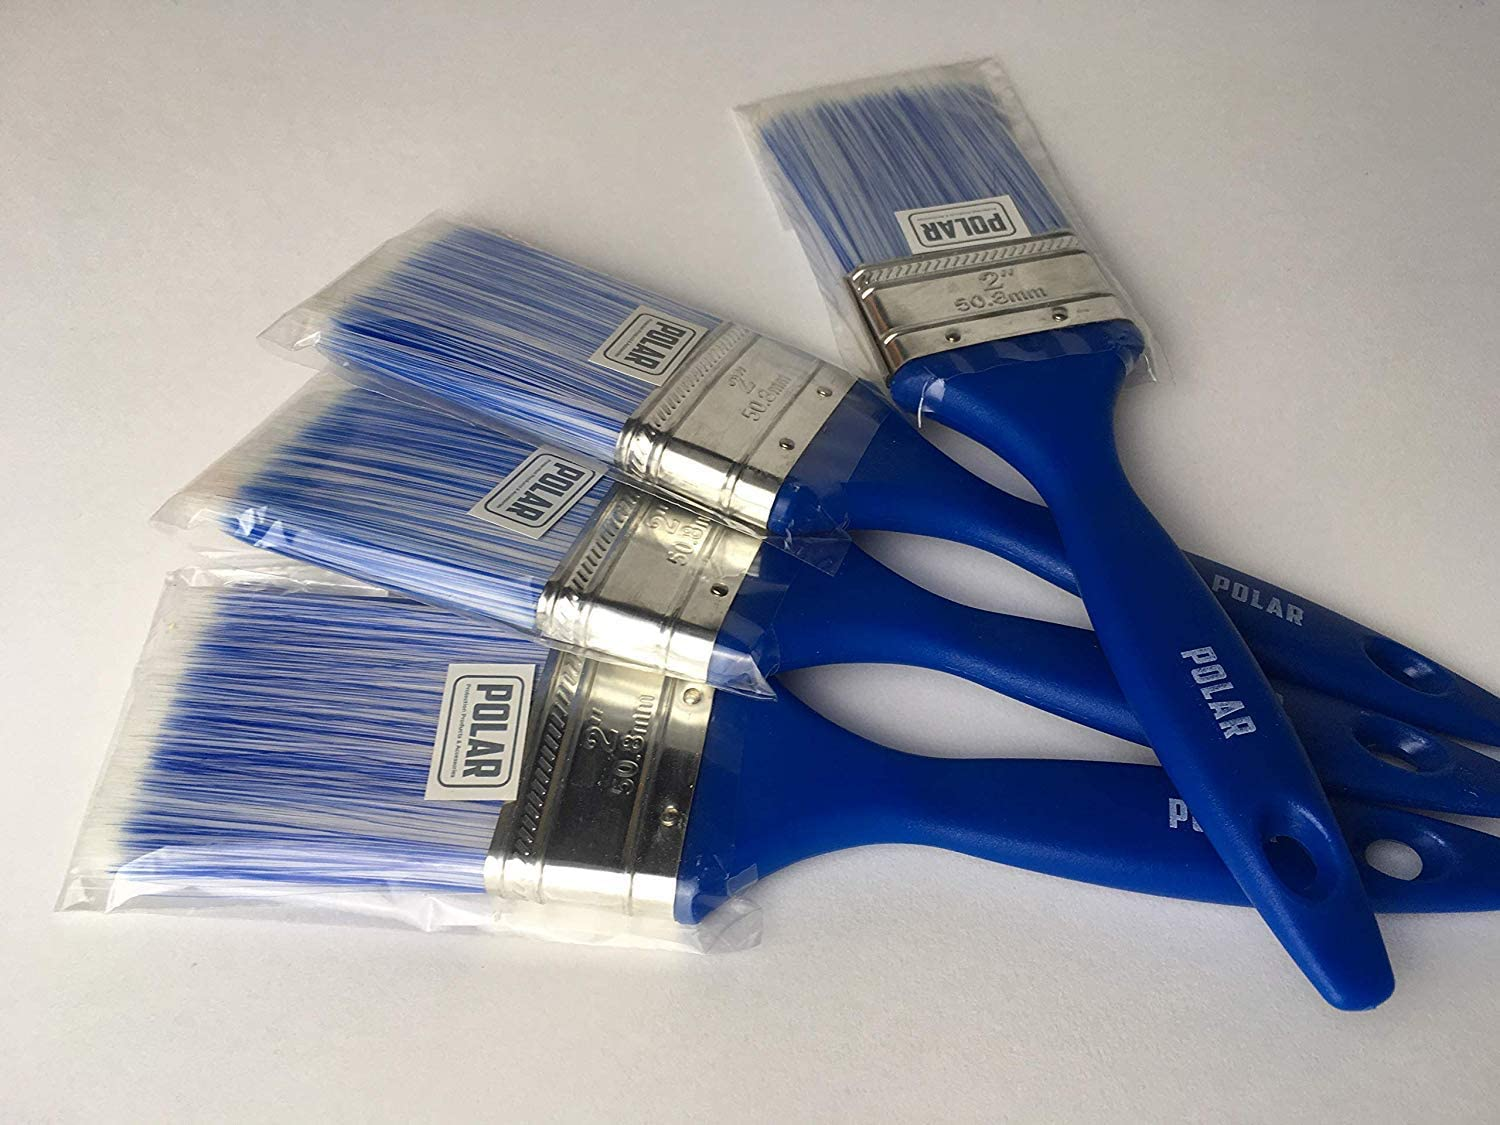 Polar Small Paint Brush Set of 4 for Small Decorating Jobs 4 Brushes are 2 inch Wide Flat Paint Brush 50.8mm